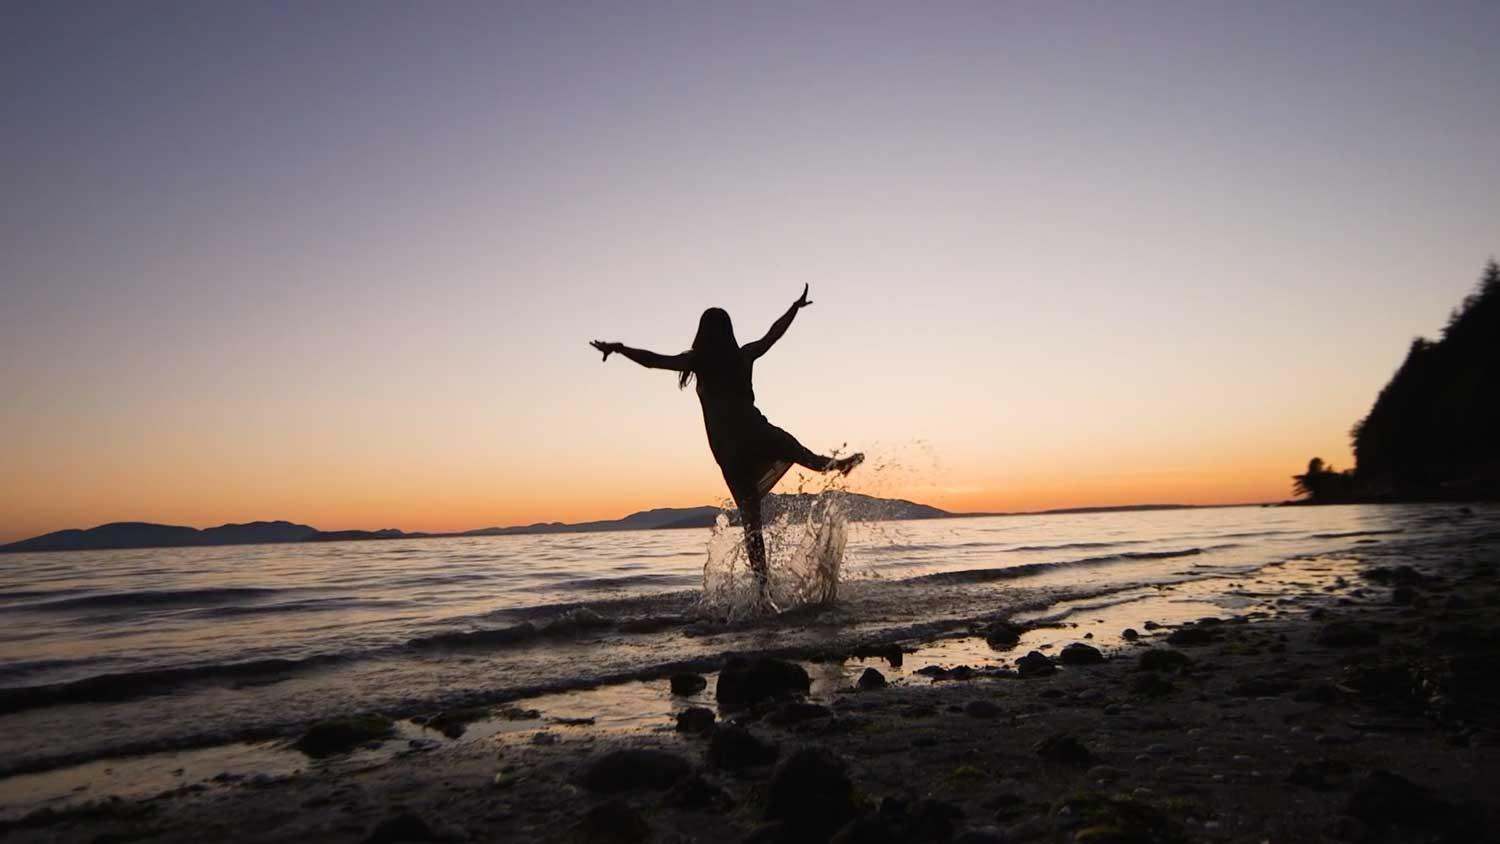 A woman stands on a beach, arms outstretched, playing in the surf during sunset